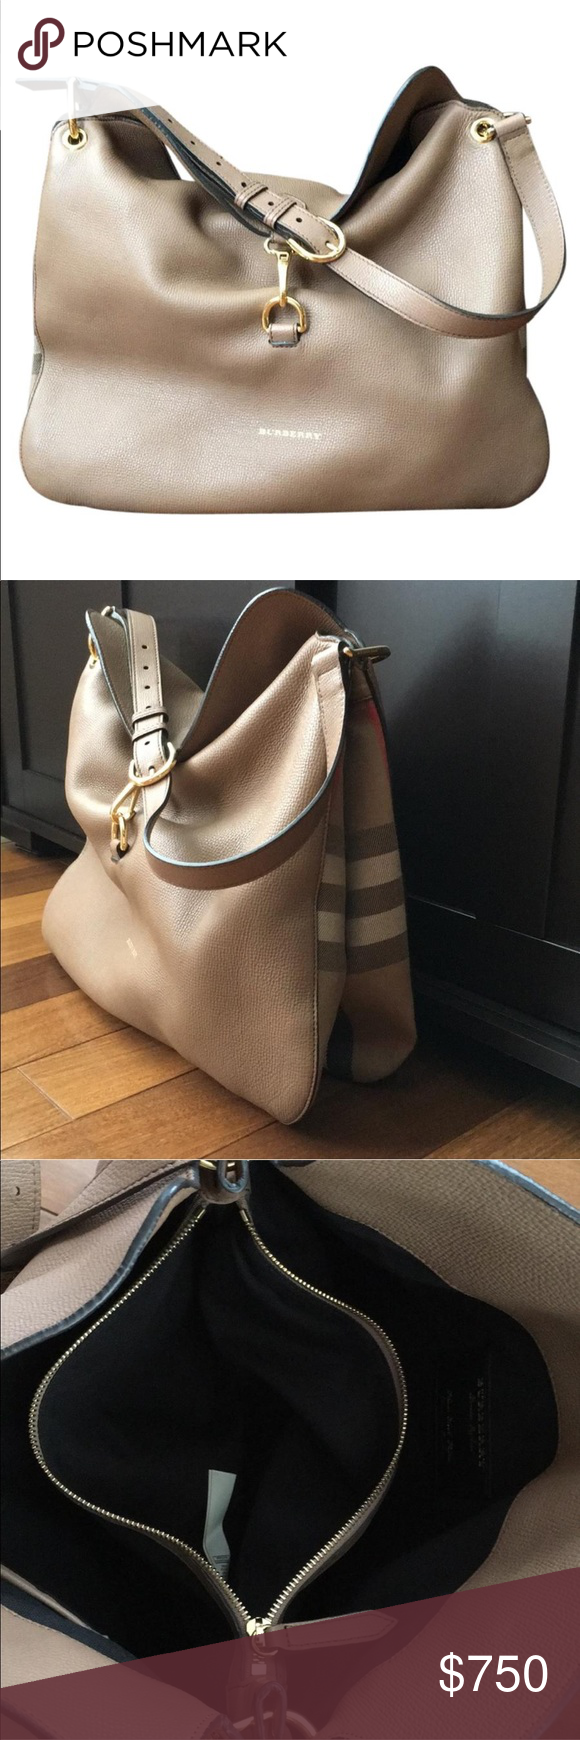 3014a2bd16b8 Burberry Md Cornwall In Derby Leather Hobo Bag Beautiful NEW WITH TAGS